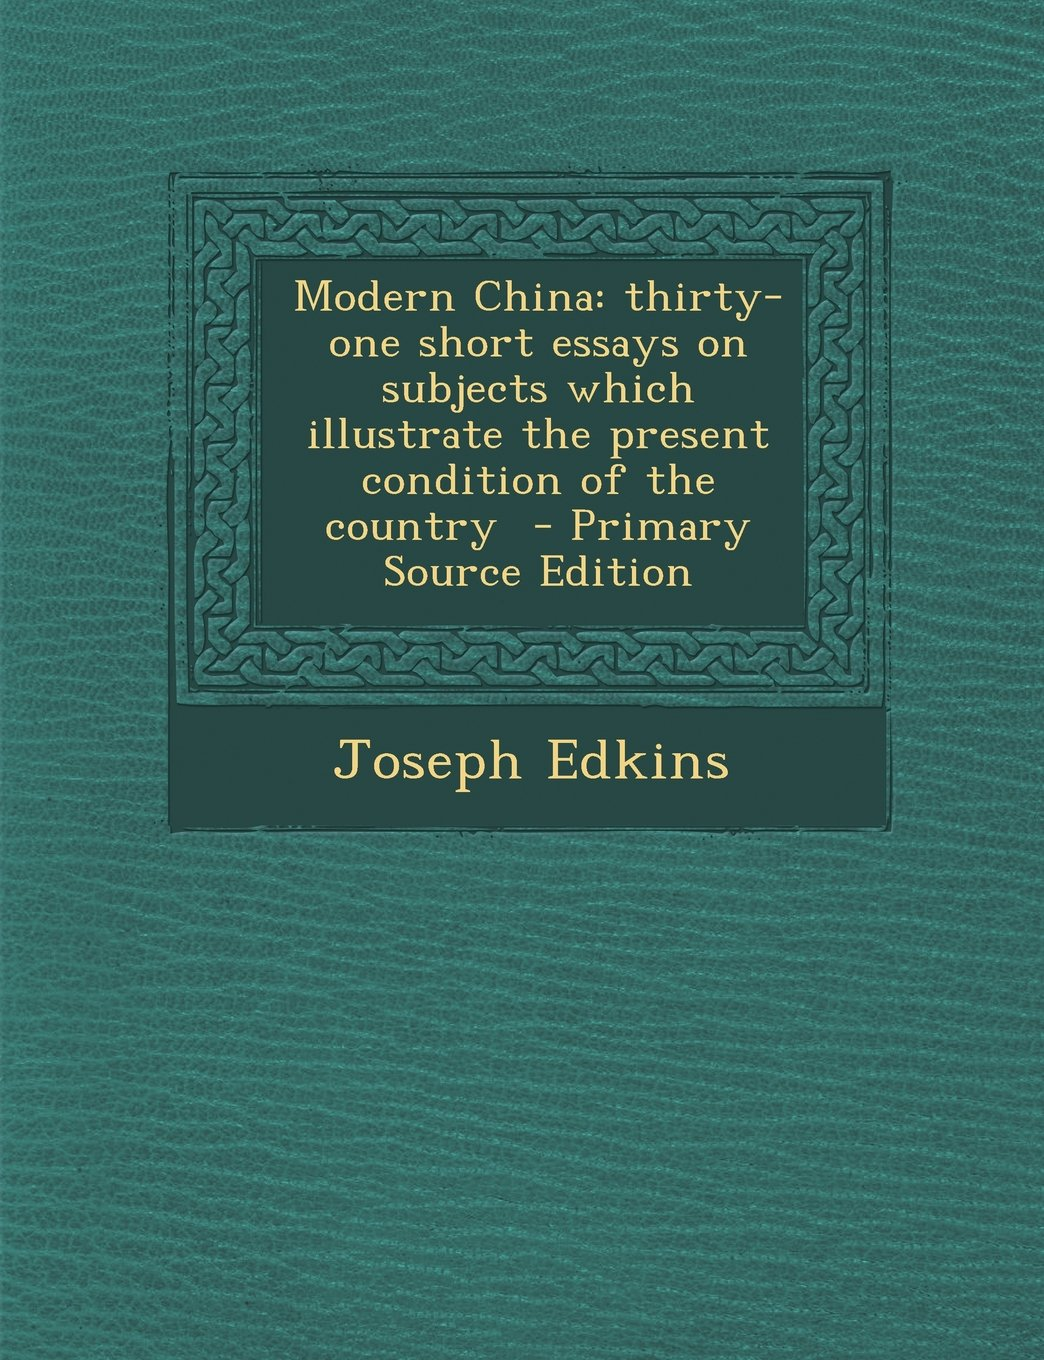 Download Modern China: Thirty-One Short Essays on Subjects Which Illustrate the Present Condition of the Country - Primary Source Edition PDF